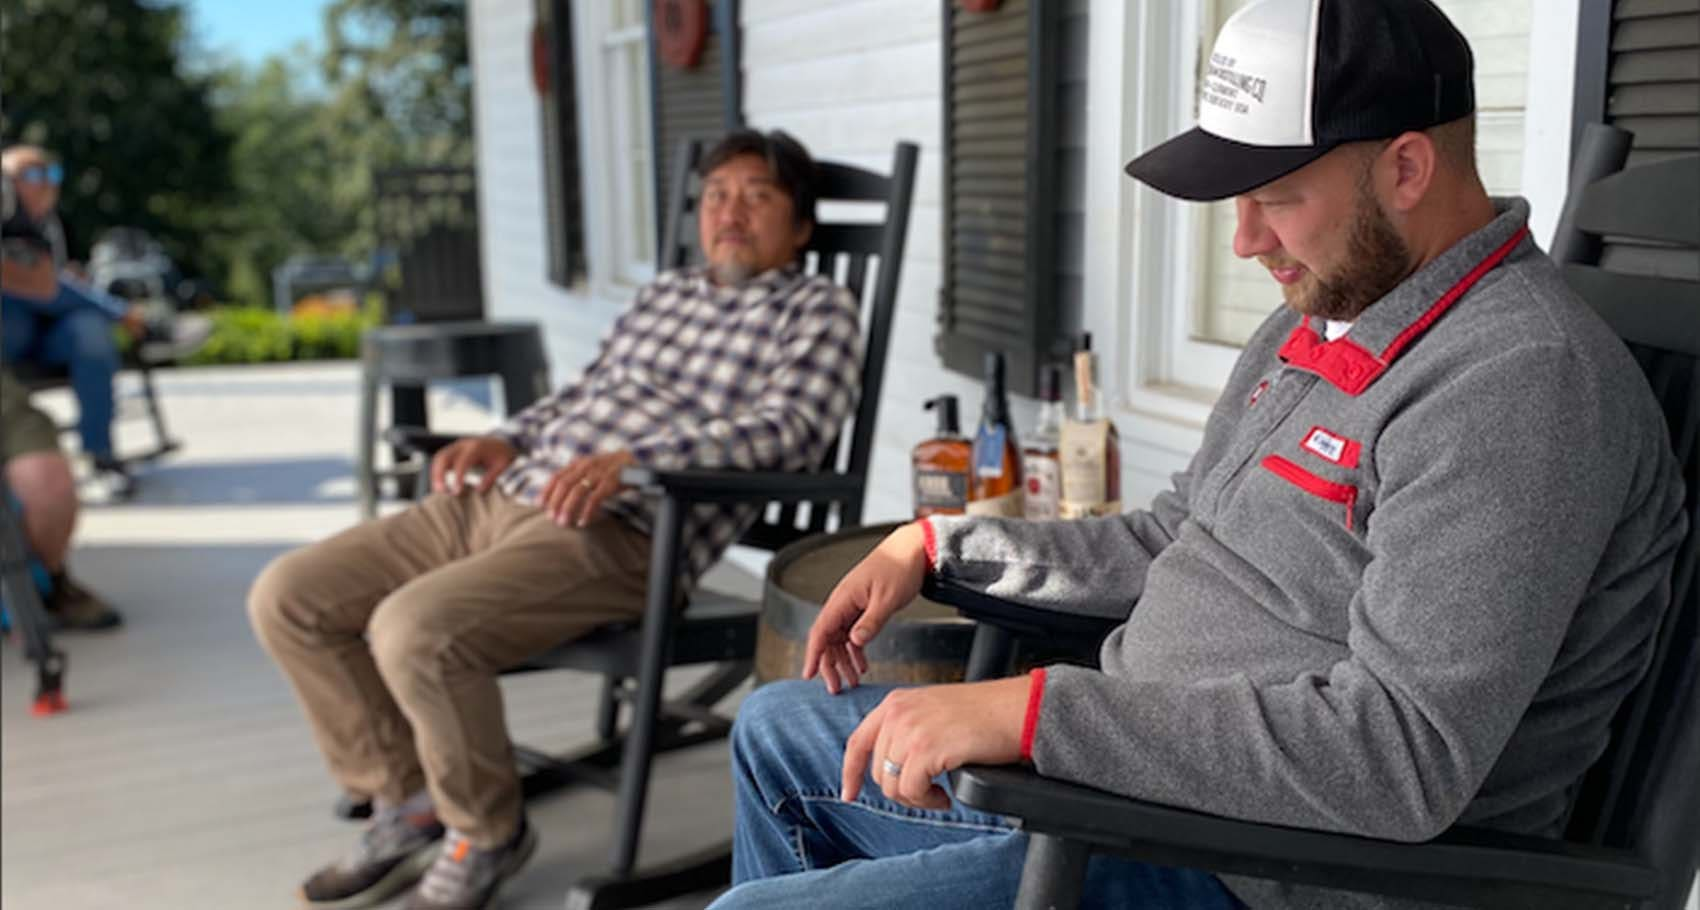 Chef Edward Lee and Freddie Noe Jr., 8th generation family distiller at Jim Beam, sitting on a porch with bourbon on barrel